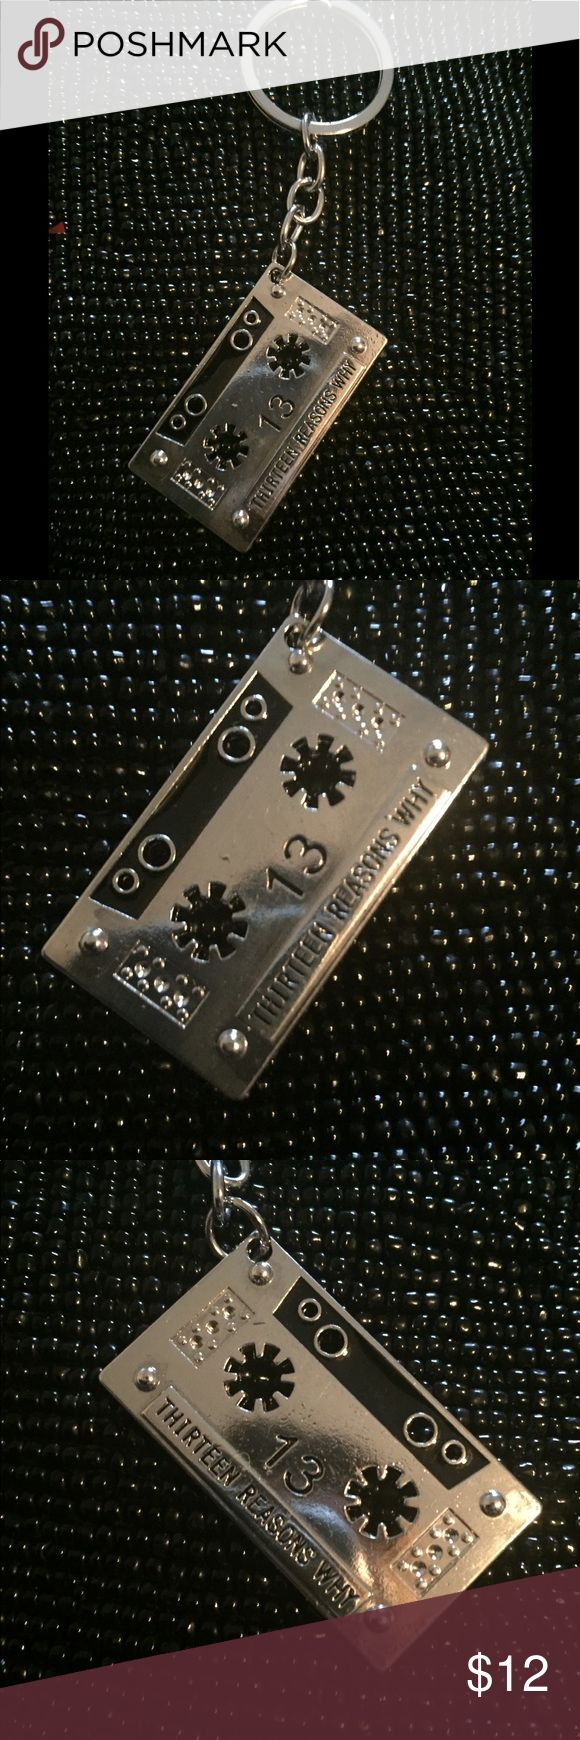 "Cult Of Personality, 13 Reasons Why Keychain, NWT Emporiama's Cult Of Personality, 13 Reasons Why Keychain, NWT  This Keychain Is A Base Of Silver Tone Metal Engraved & Stamped With Thirteen Reasons Why Set With Black Enamel  The Design Appears On Both Sides  It Measures  4"" In Total Length Two Of These Are Available  Bundle Two Or More Items From My Shop & Save 25% Automatically! Plus You'll Save A Bunch On Shipping! Emporiama Accessories Key & Card Holders"